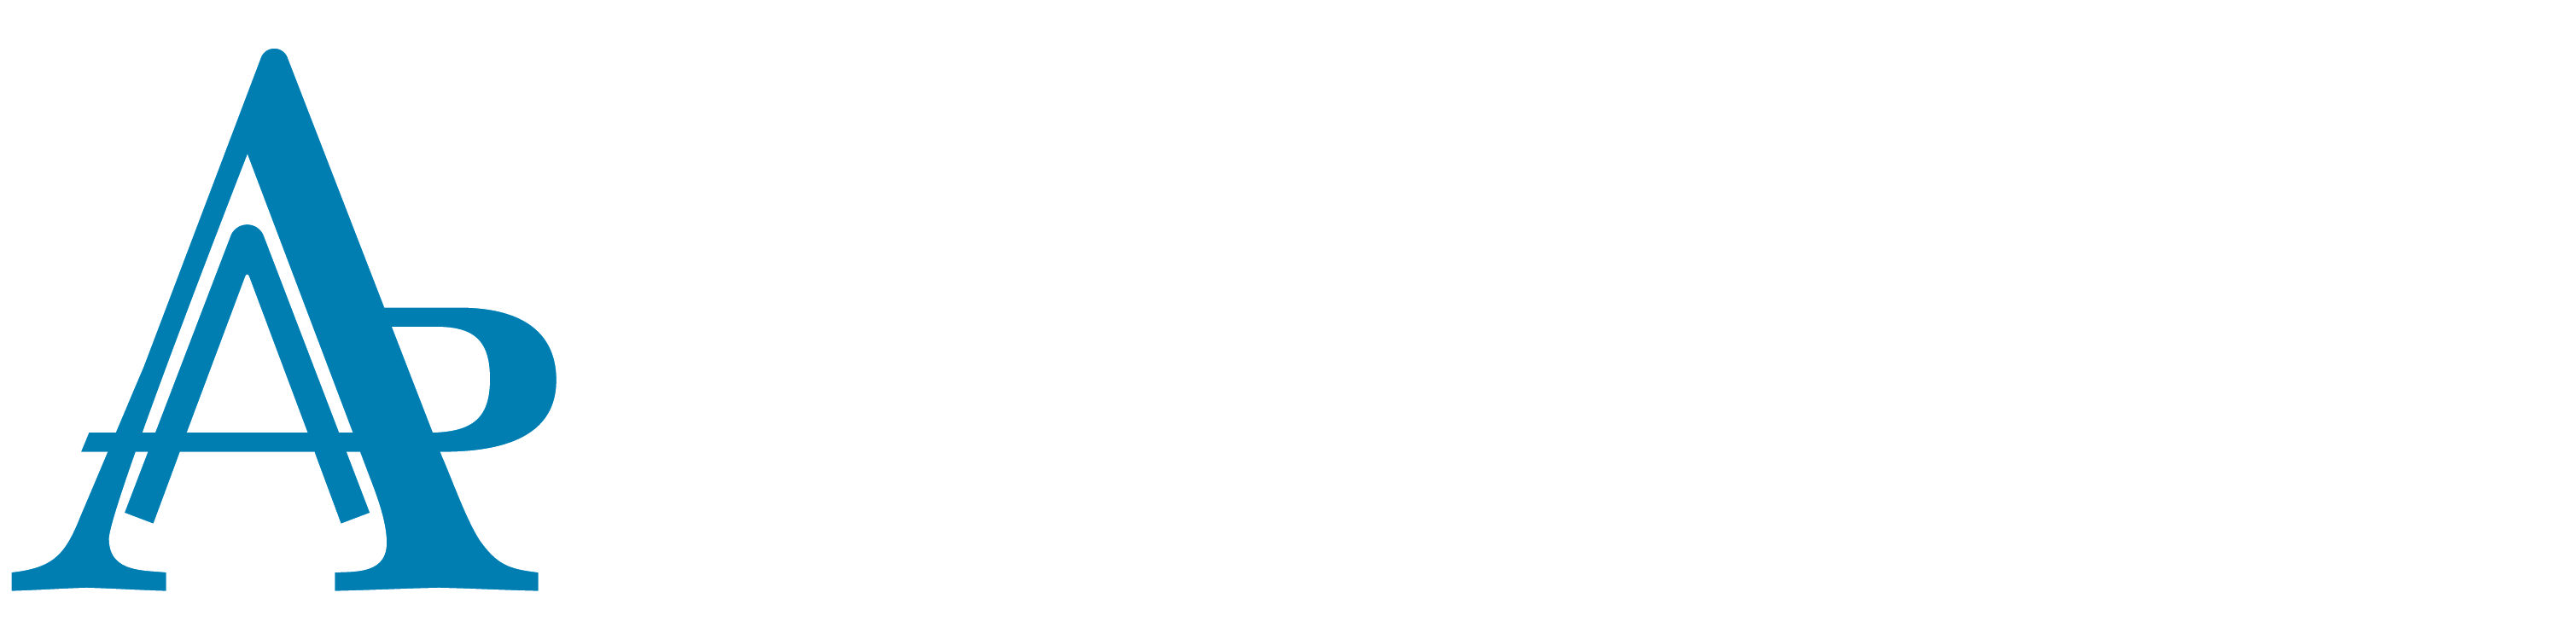 Advanced Architectural Products